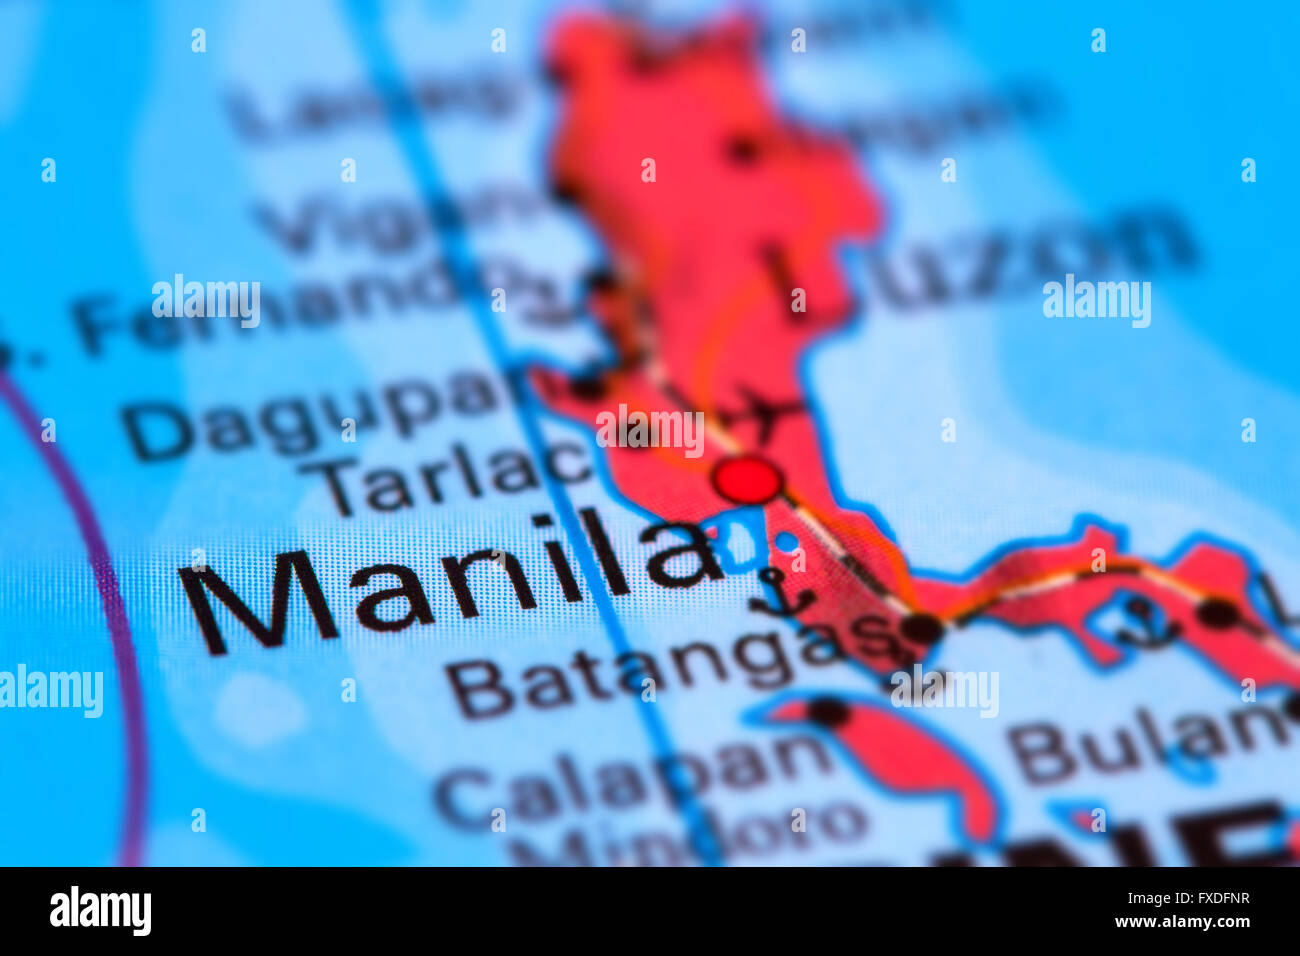 Manila Capital City of the Philippines on the World Map Stock